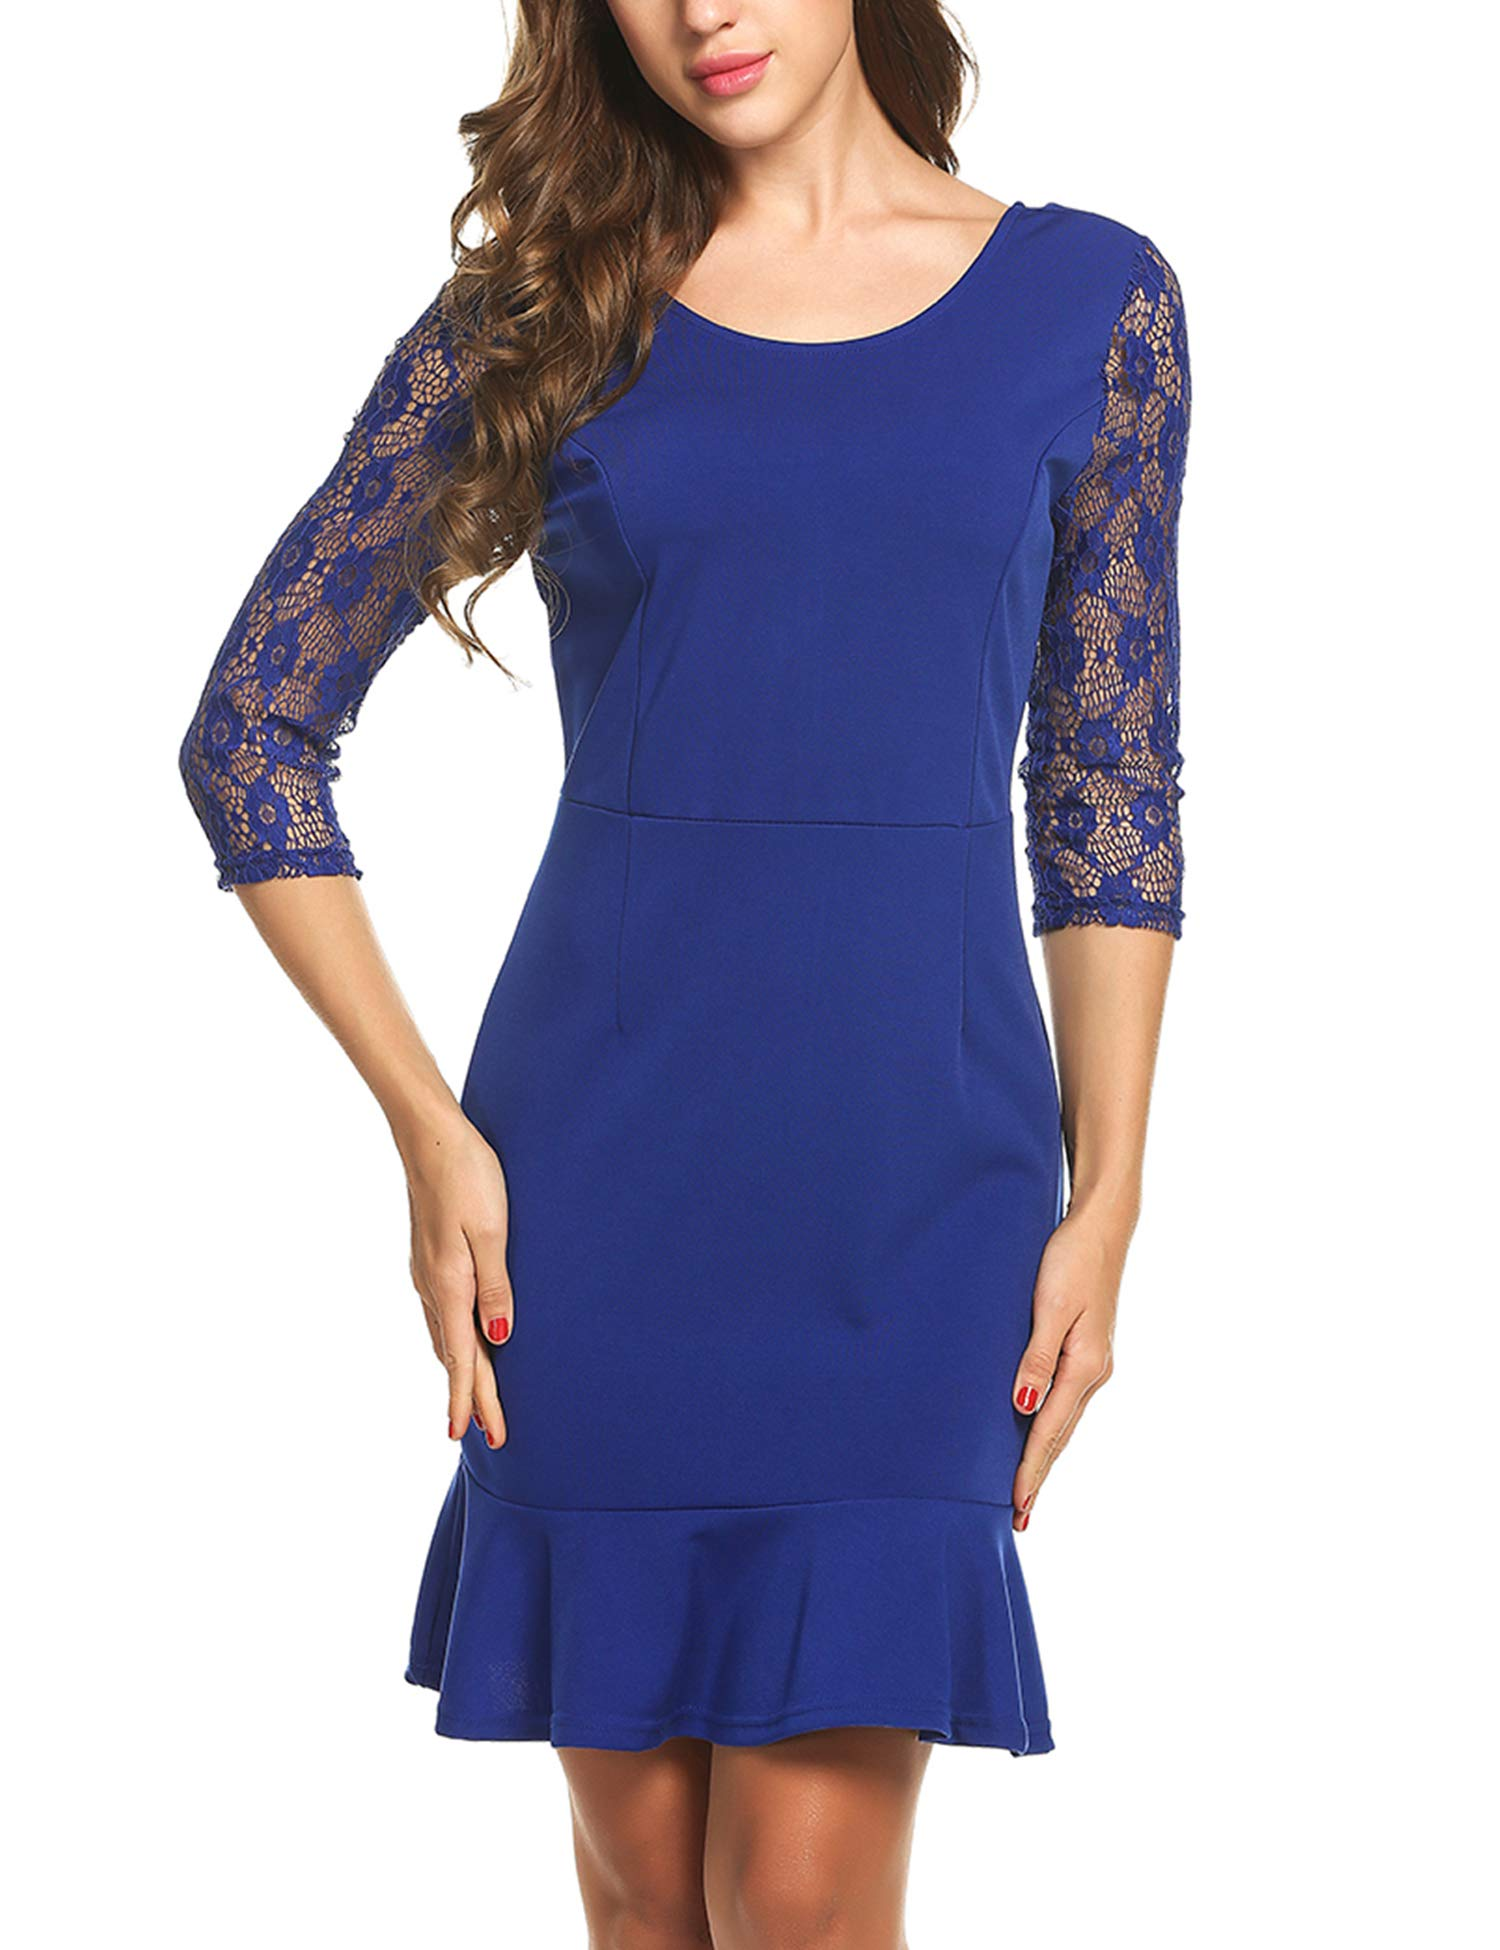 ANGVNS Women's 3/4 Sleeve Square Neck Package Hip Knee Length Floral Lace Pencil Party Dress